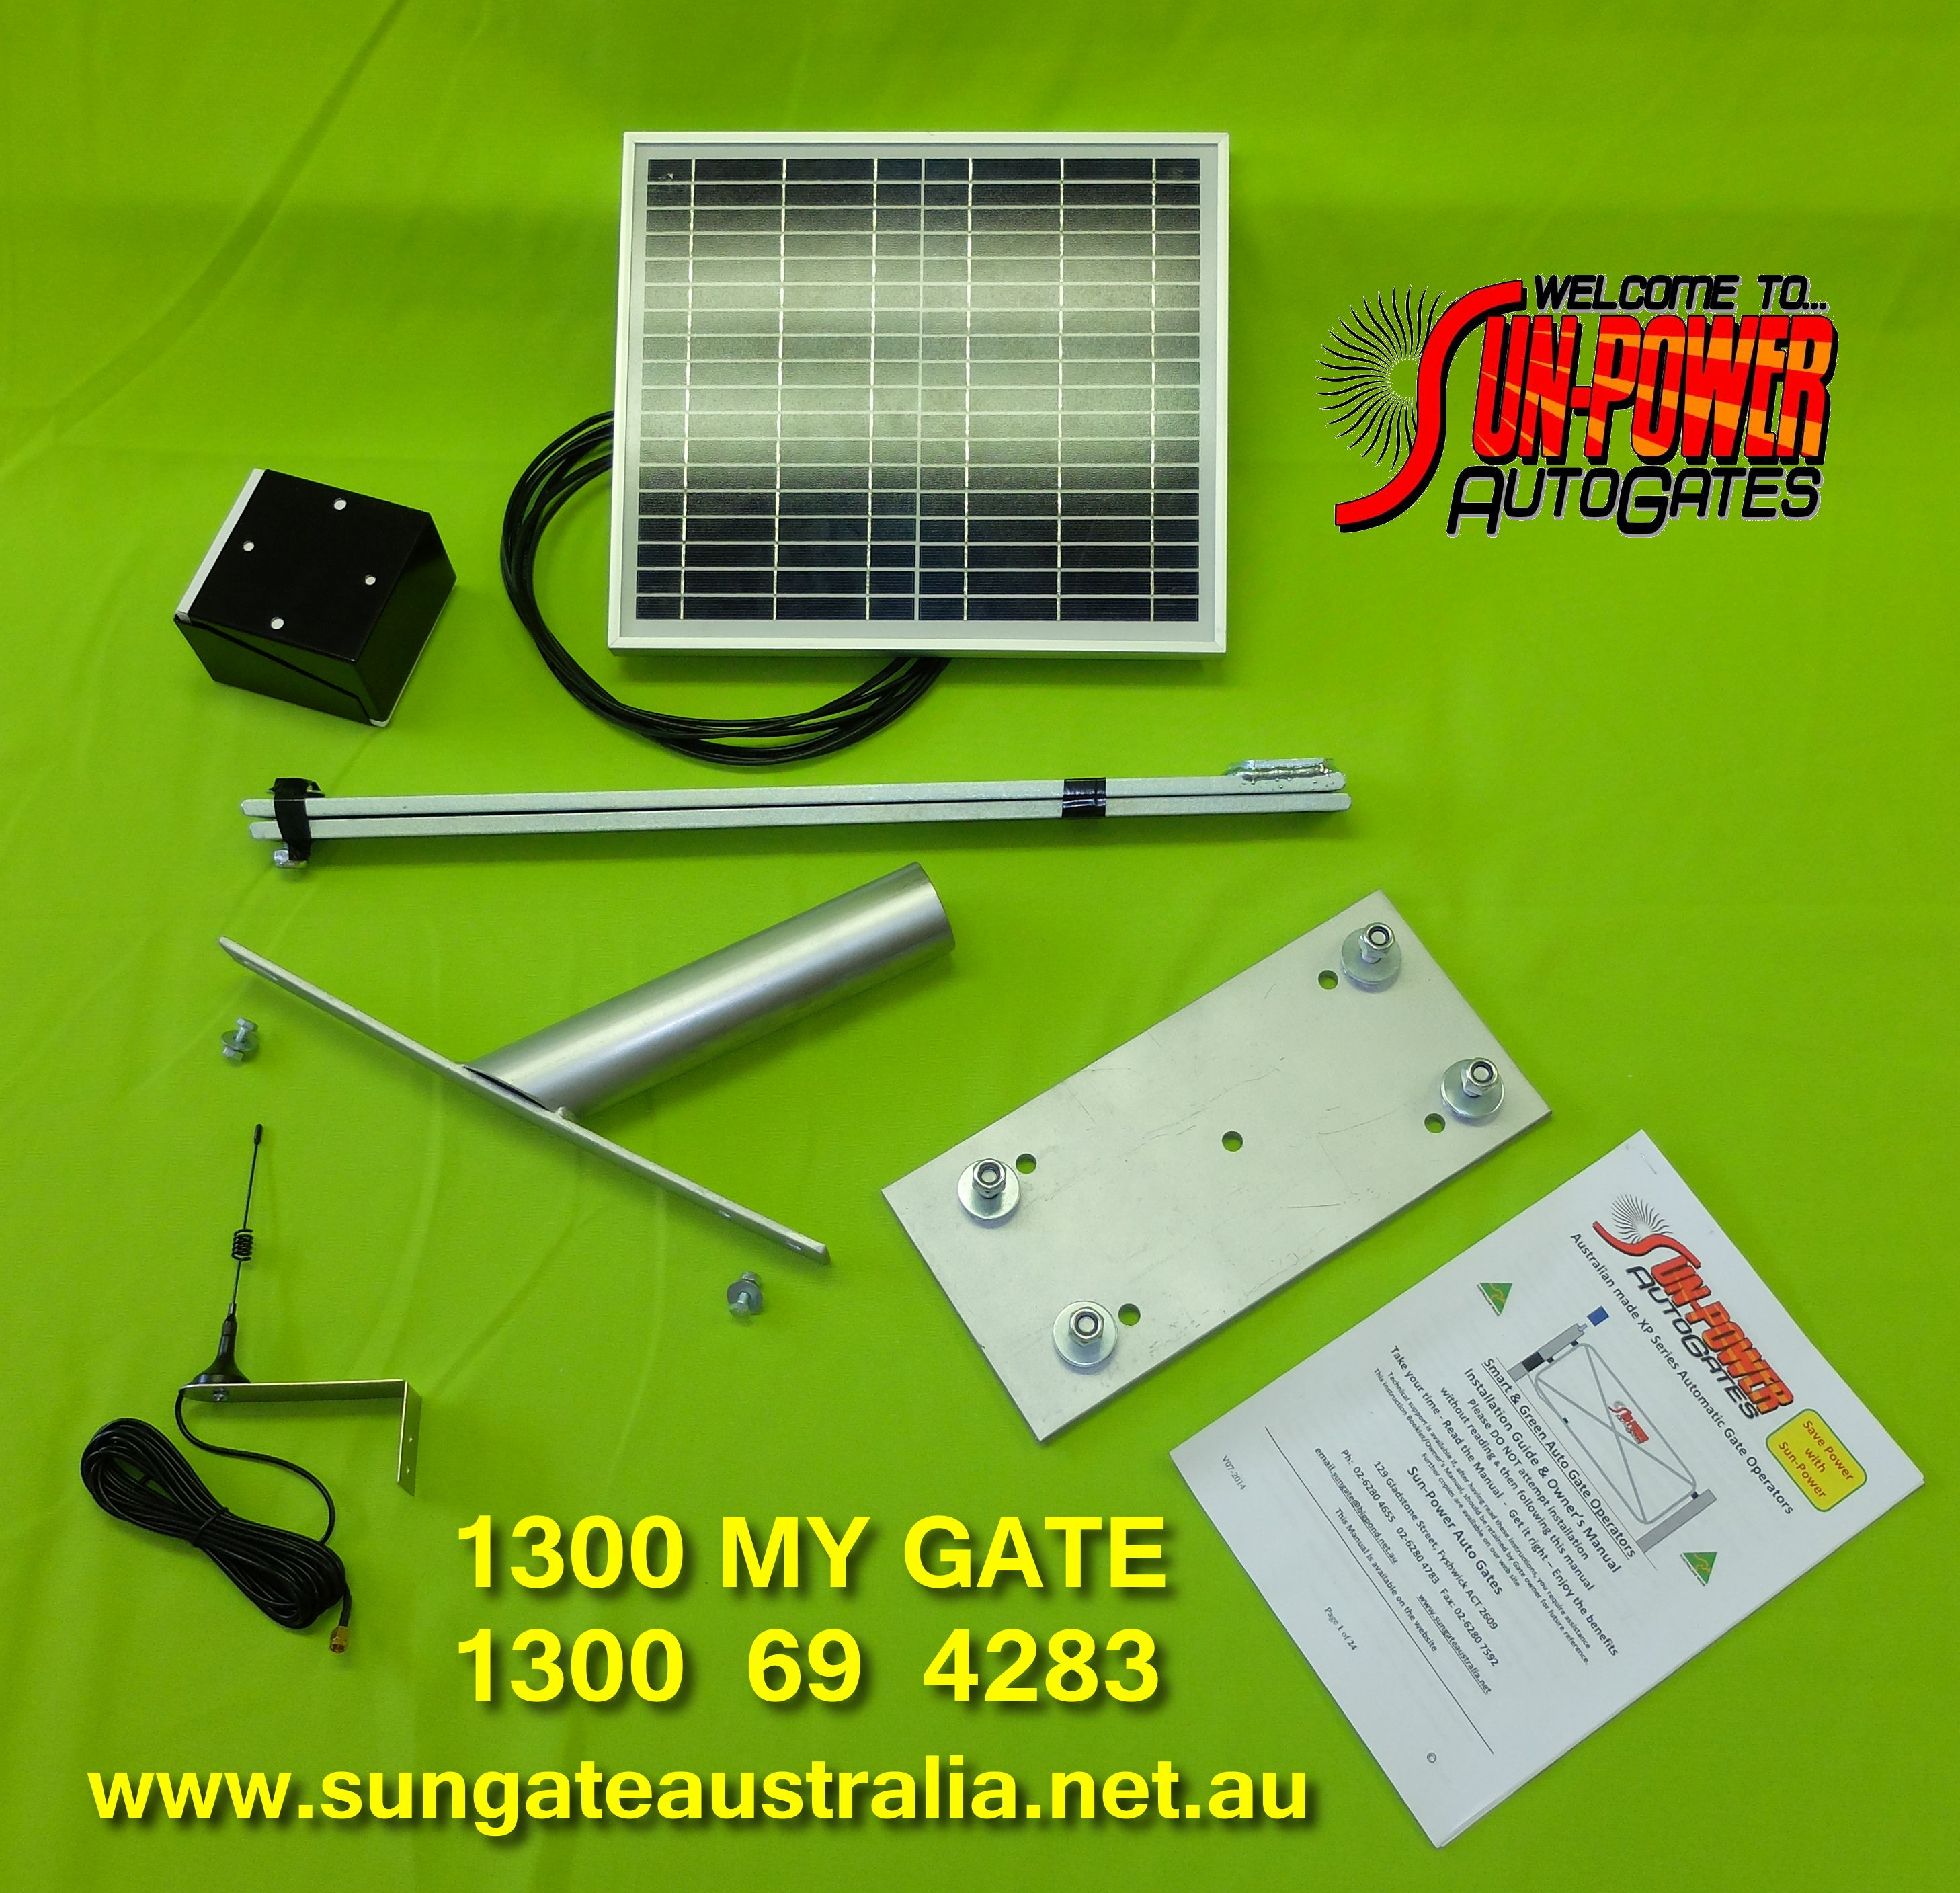 Solar Panel and bracket - Lever Arm - Mounting Plate - Aerial - Remotes - Keypads